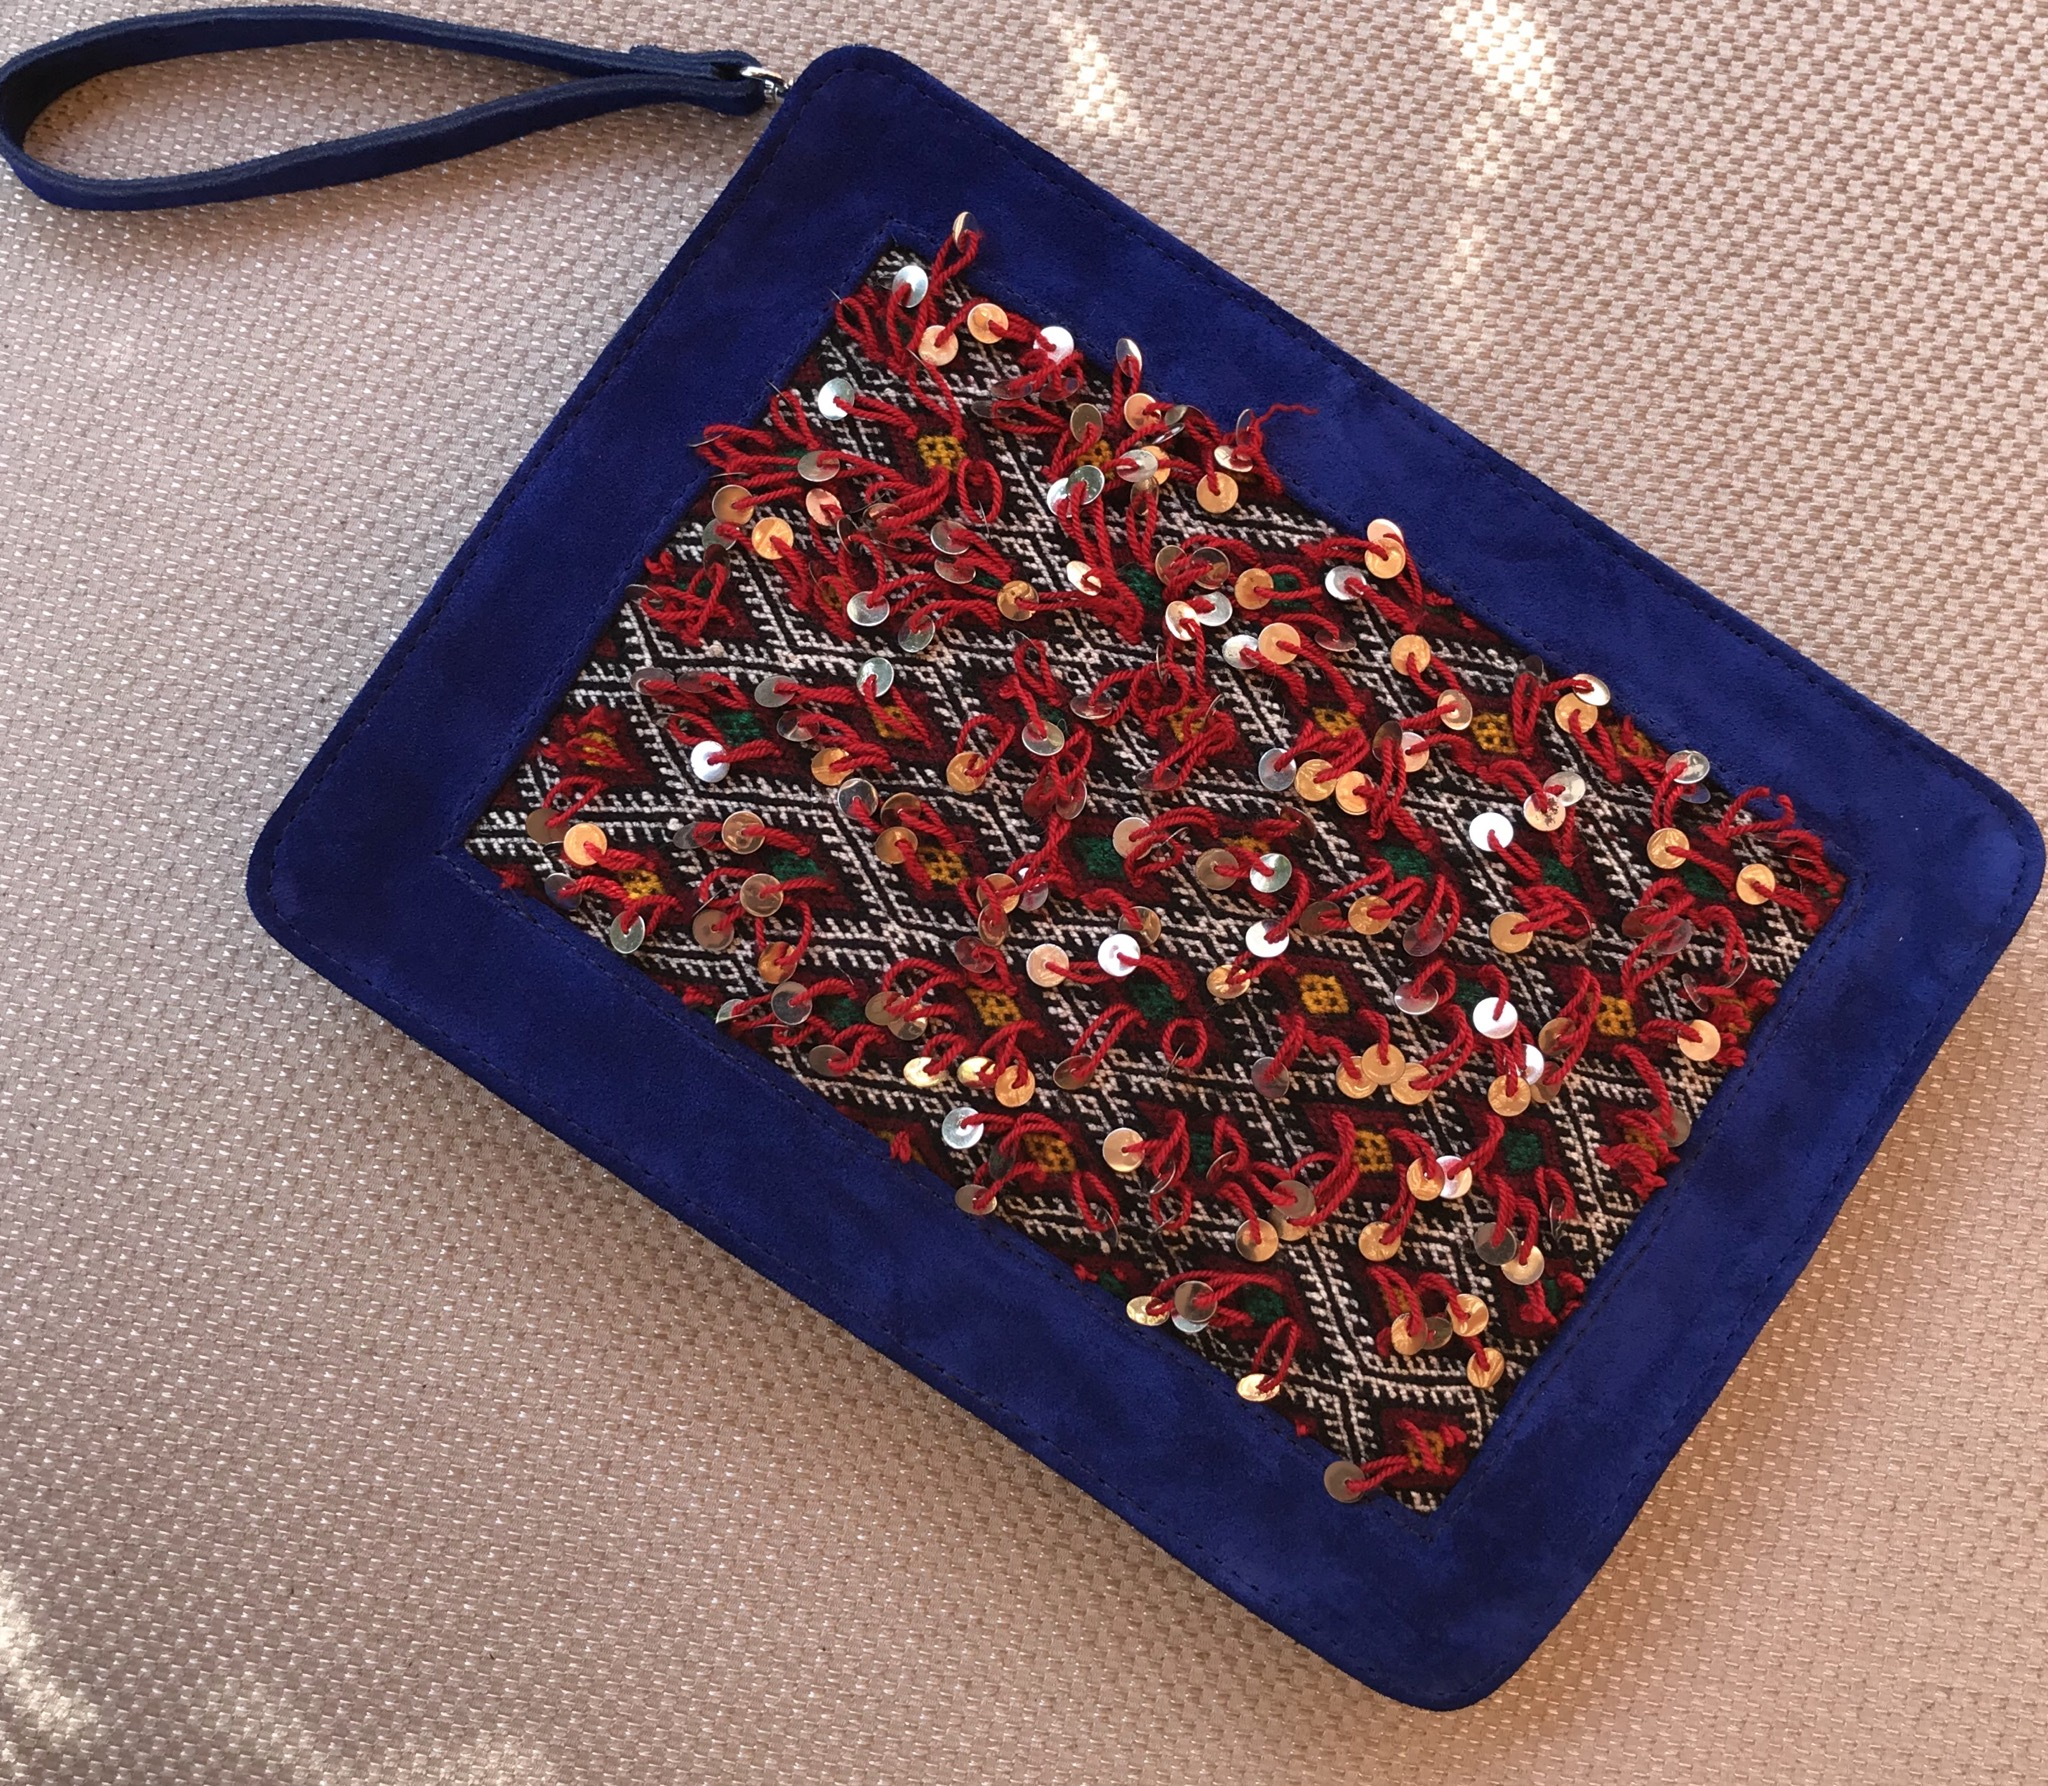 Purse with suede leather blue majorelle & vintage rug Red